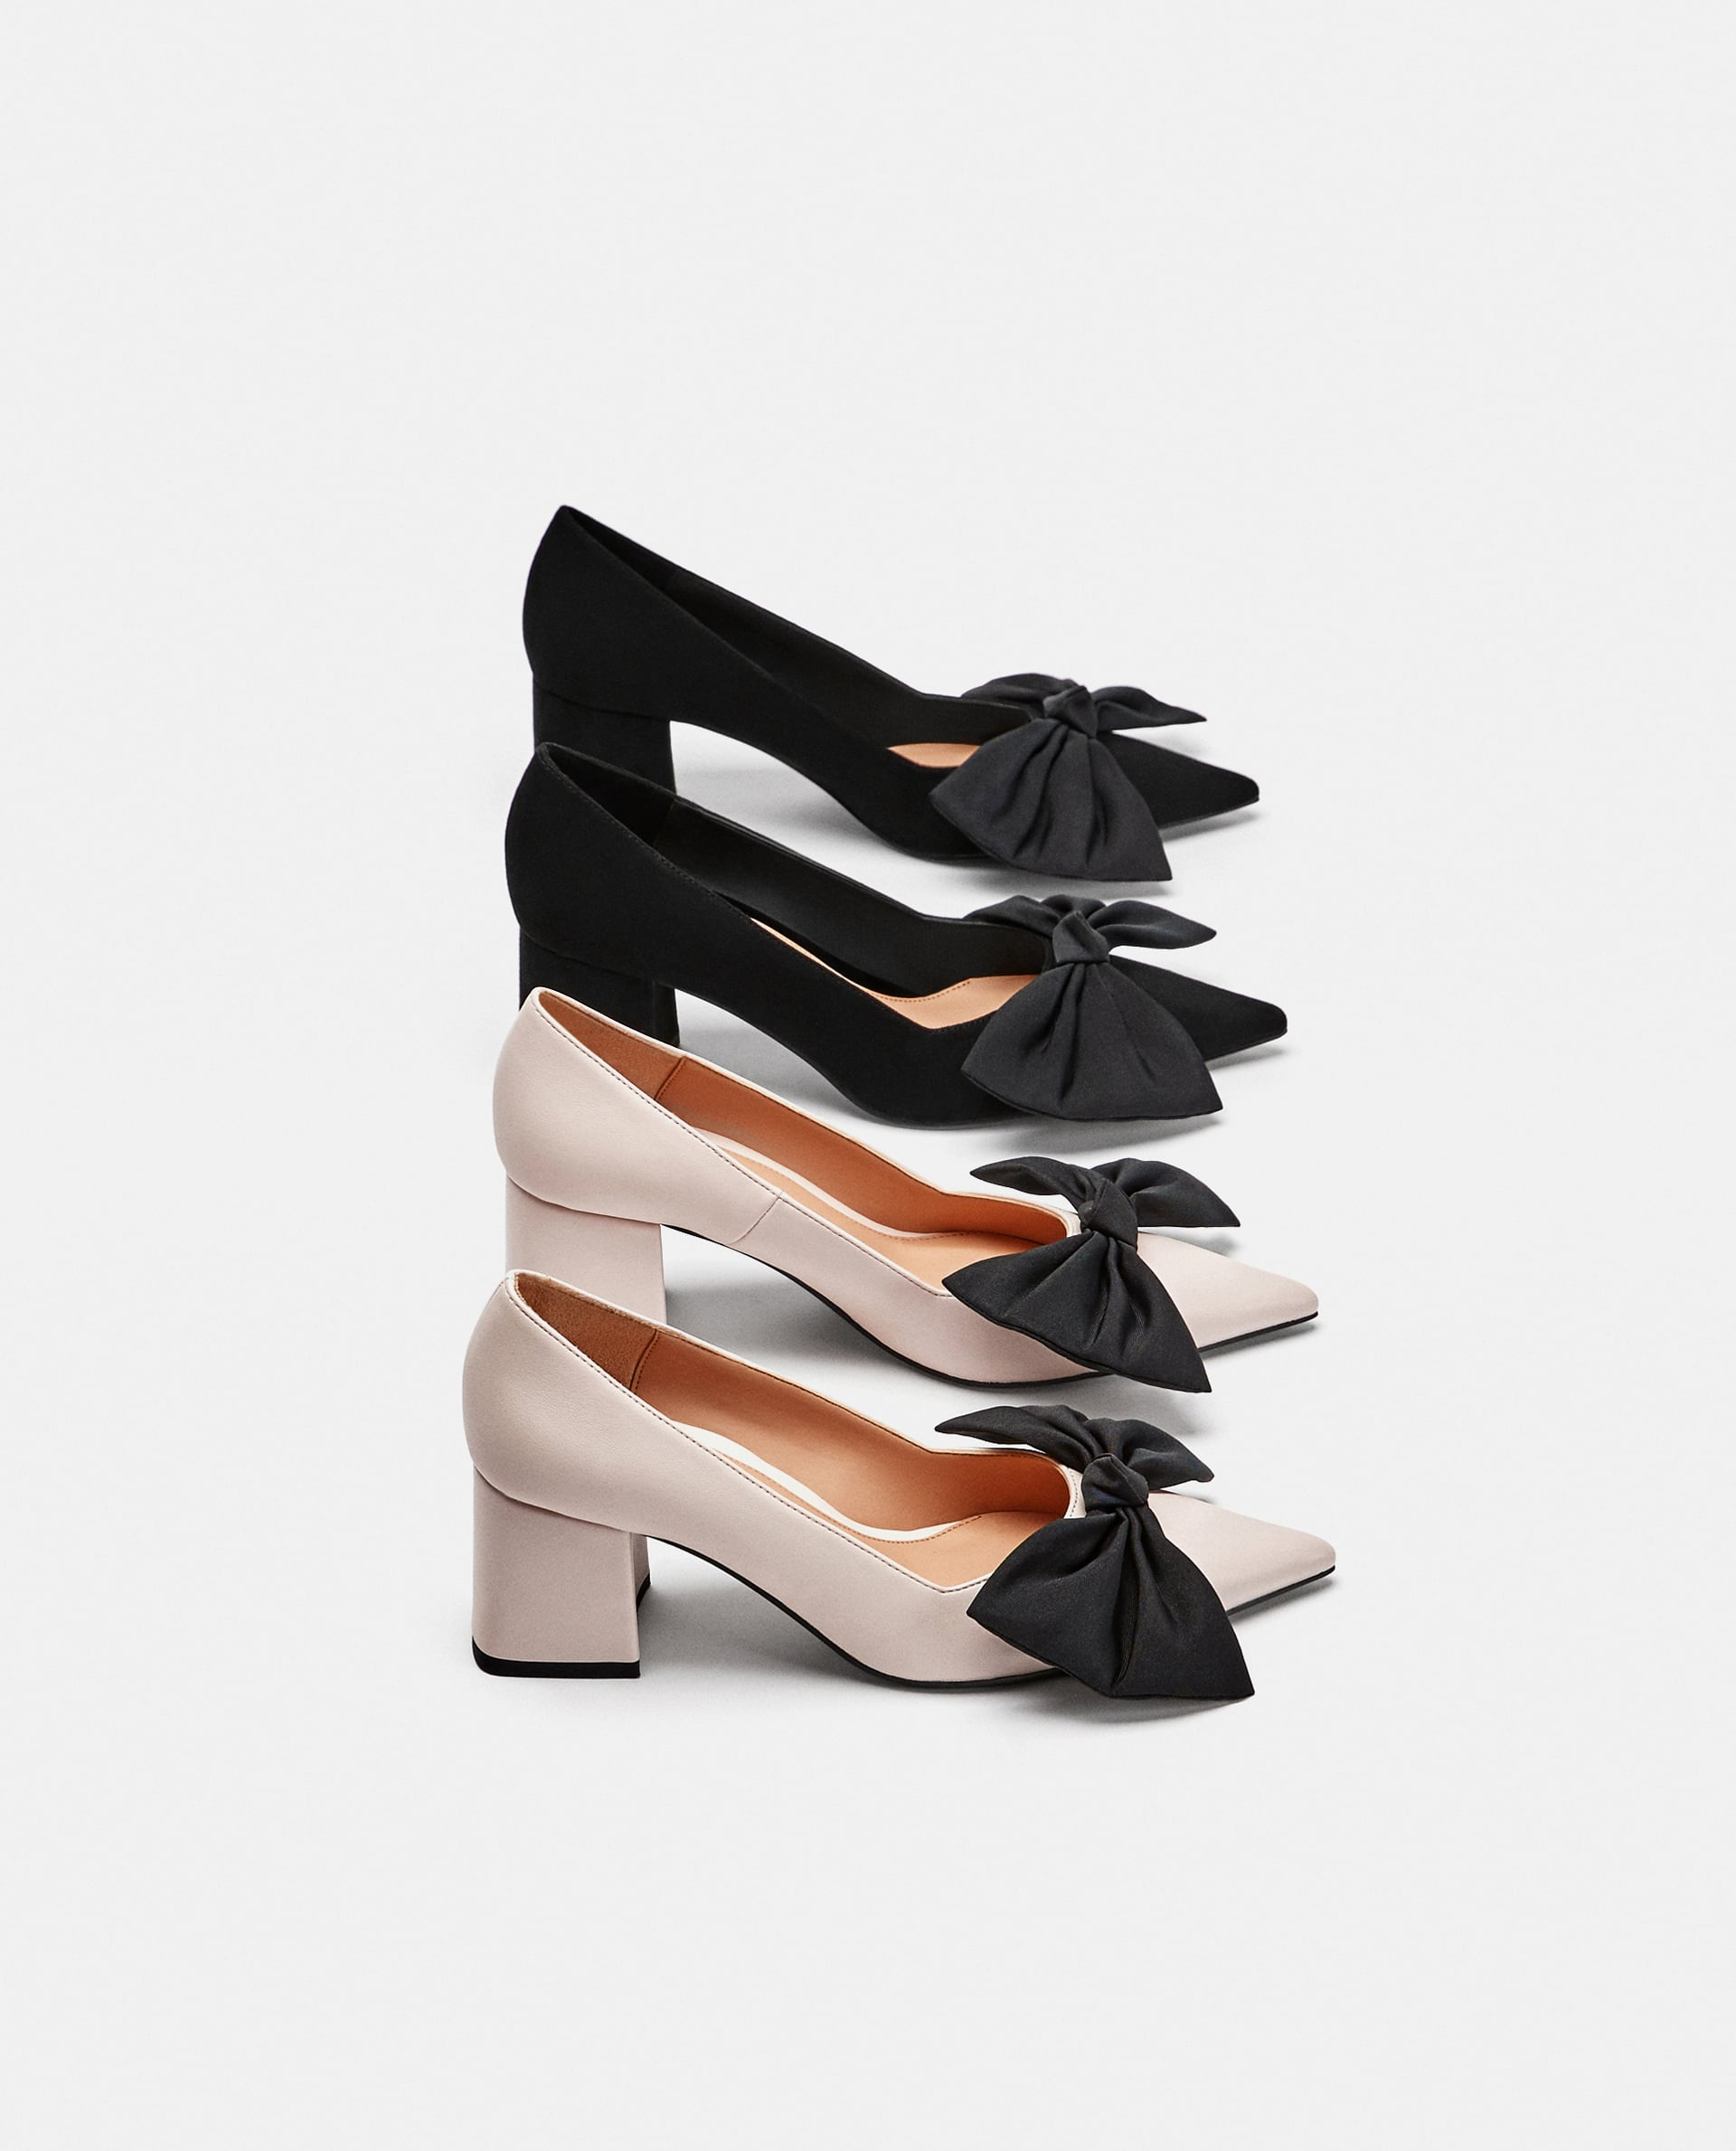 8110f704524 Zara MEDIUM HEEL COURT SHOES WITH BOW at £15.99